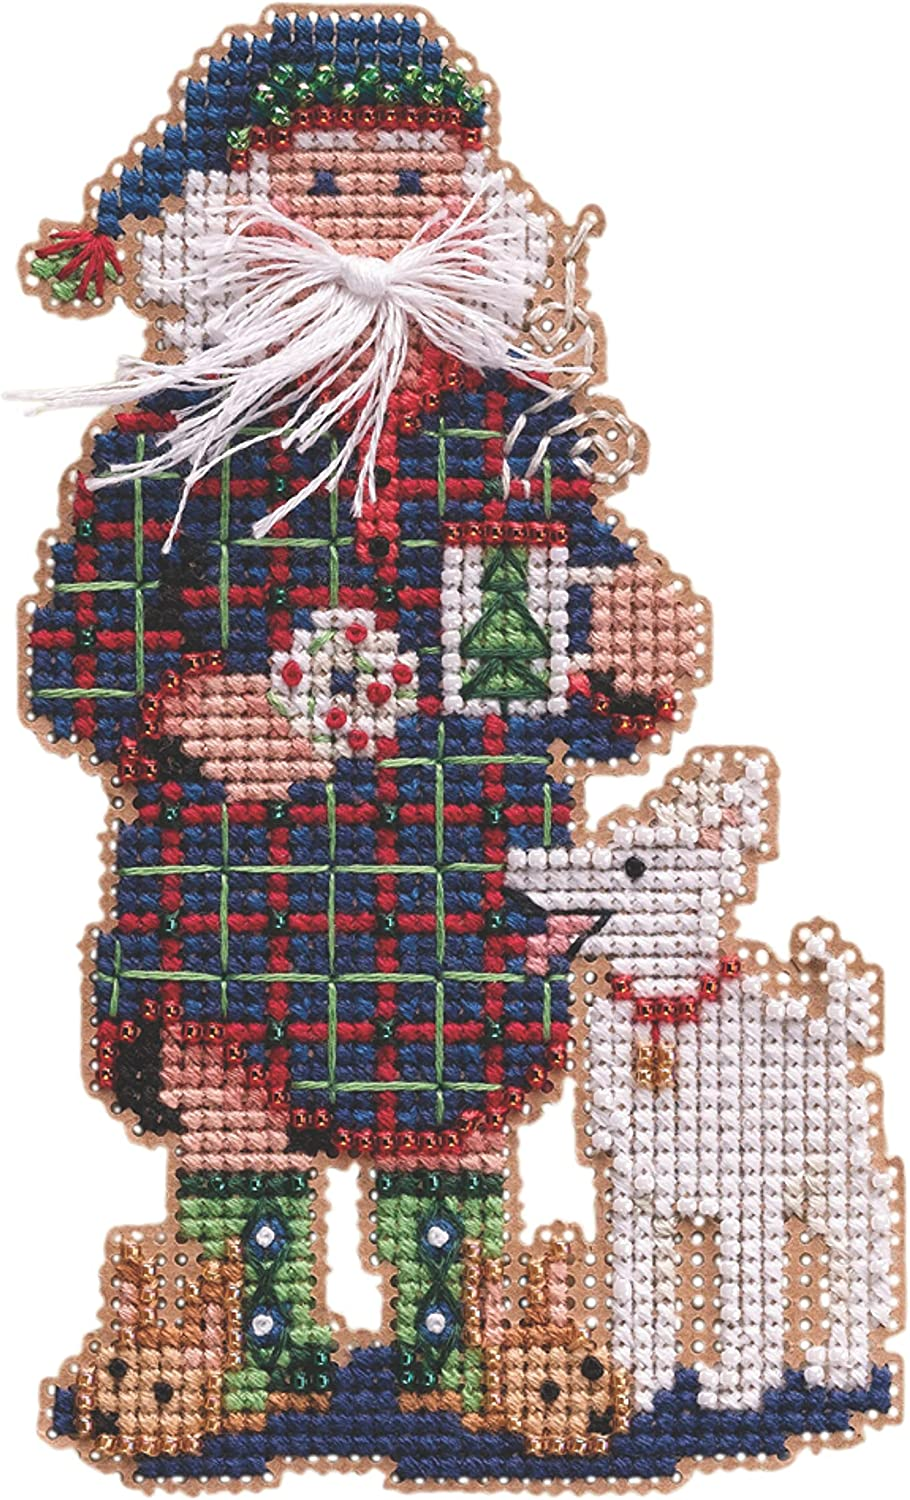 Christmas Morning High quality Santa Max 88% OFF Beaded Counted Cross Stitch Ornament Kit